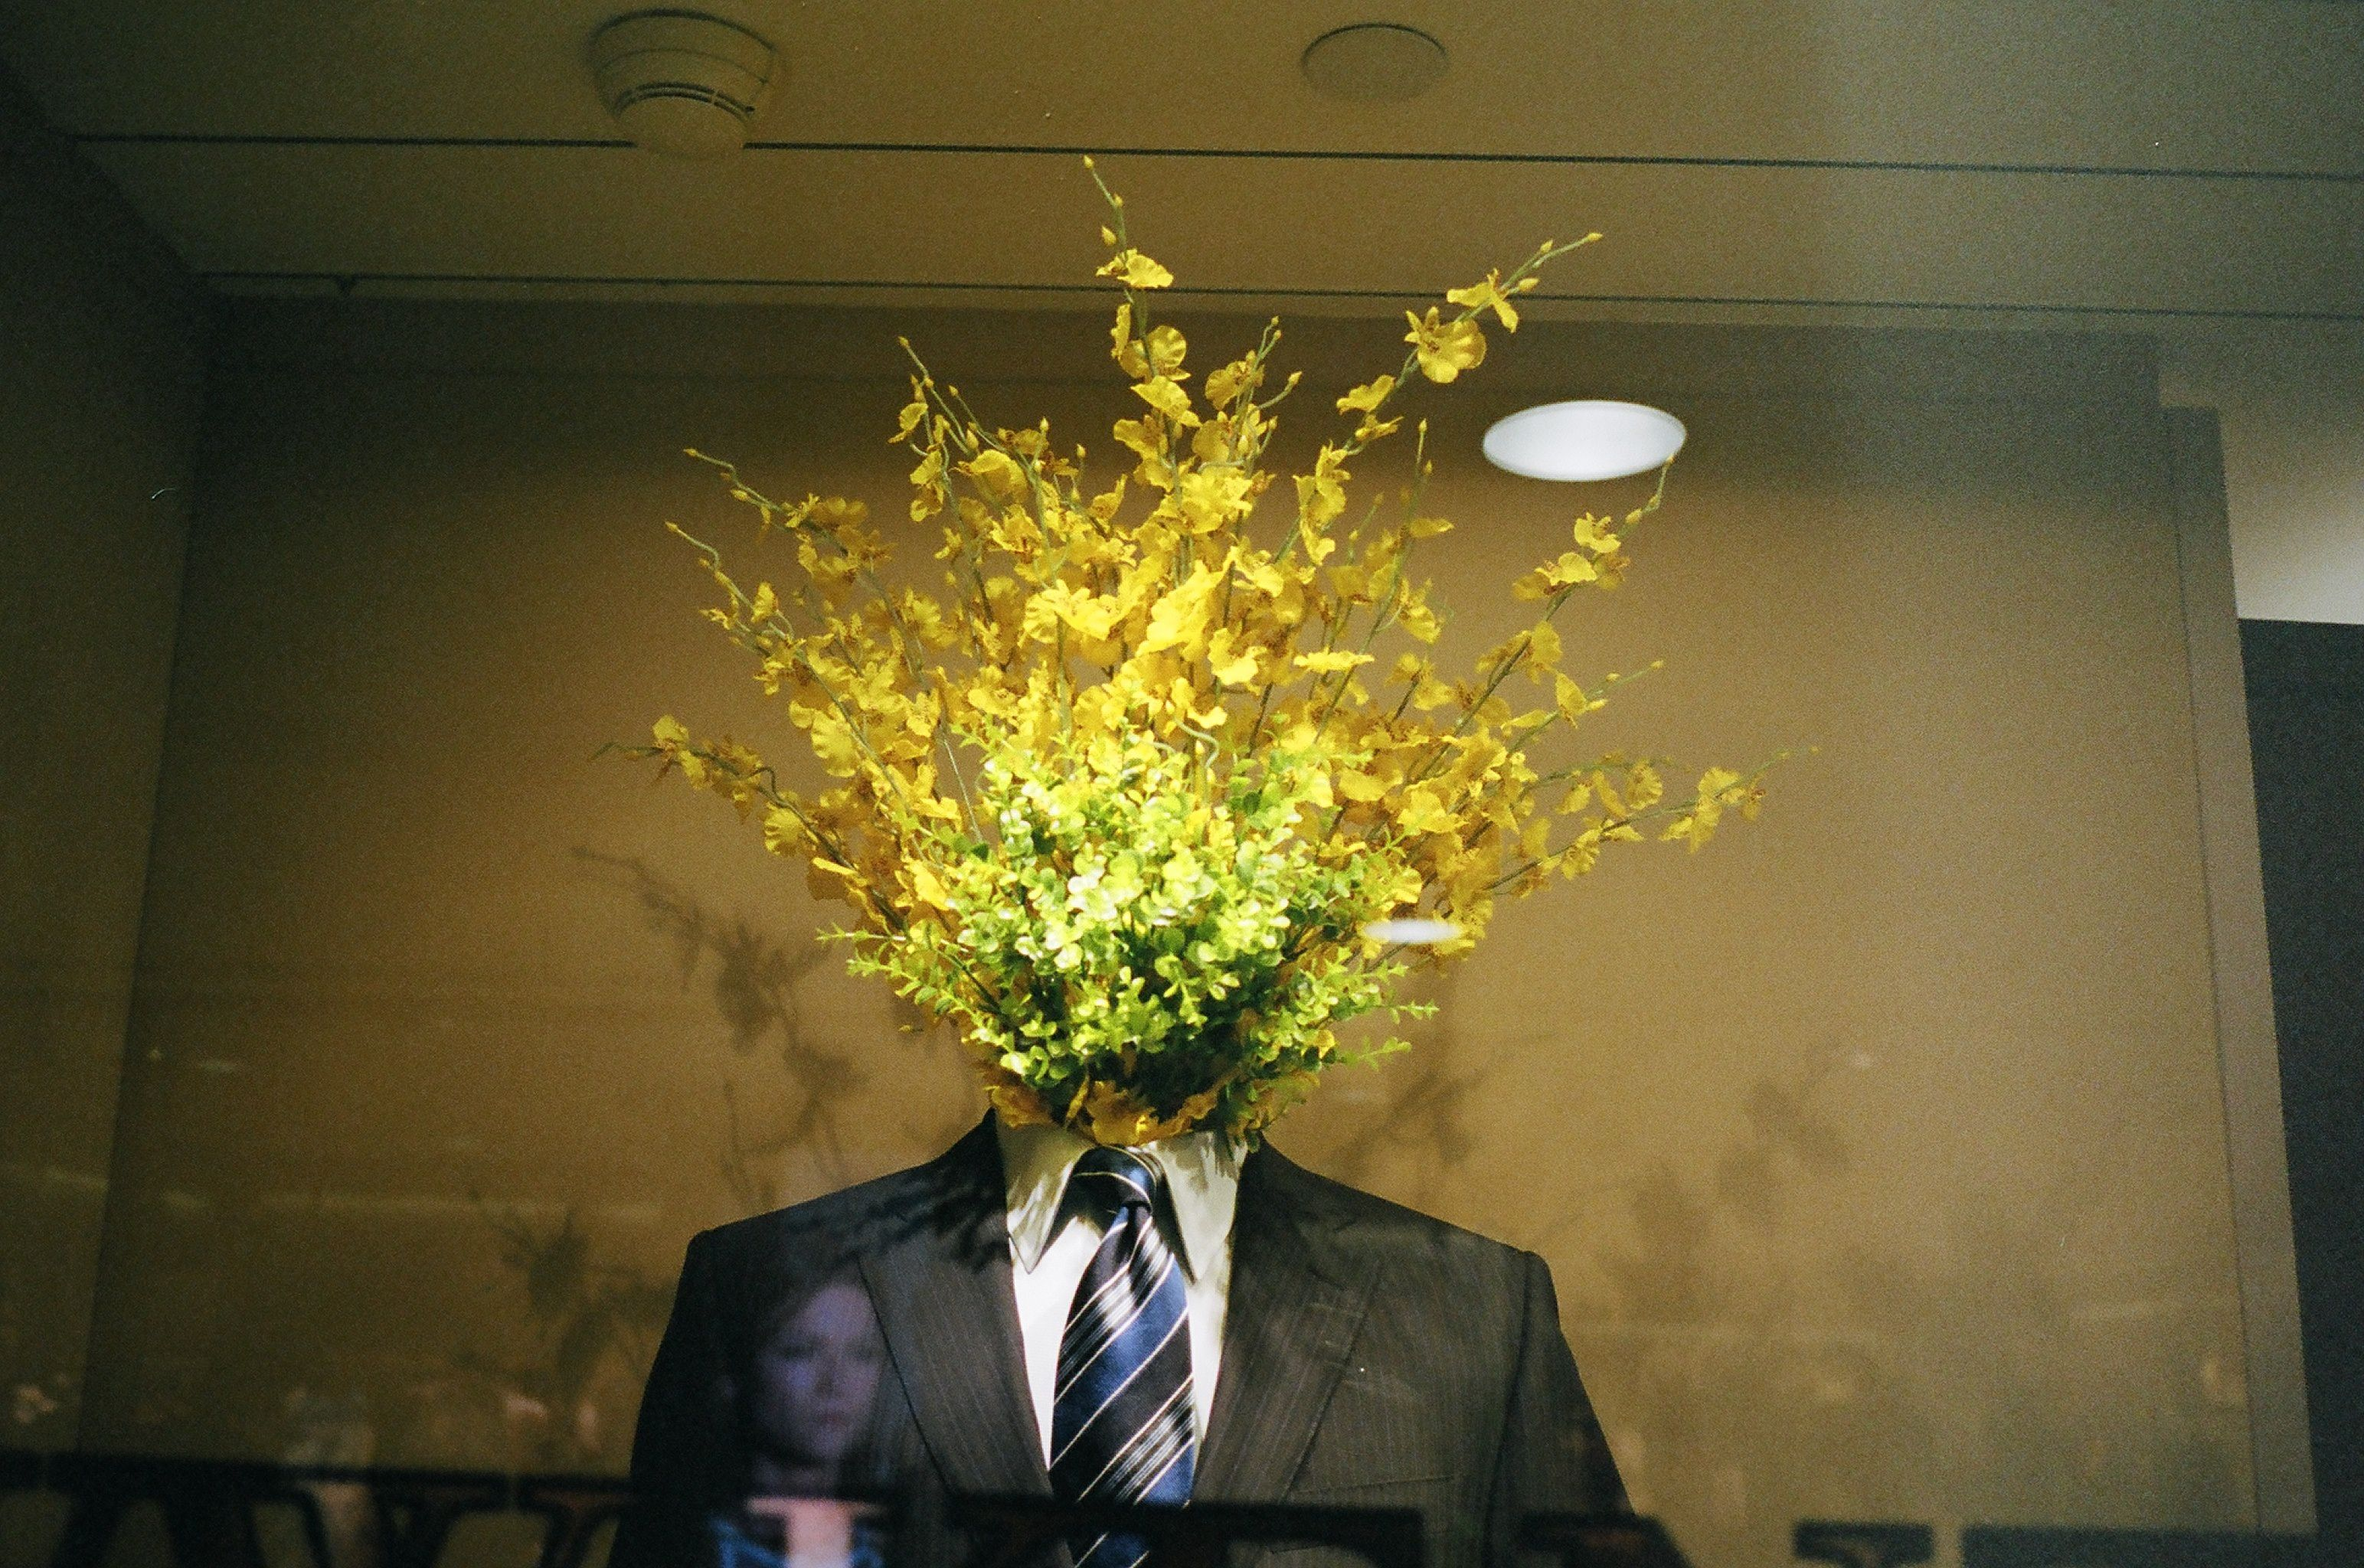 Suit and yellow flowers. Hong Kong, 2014